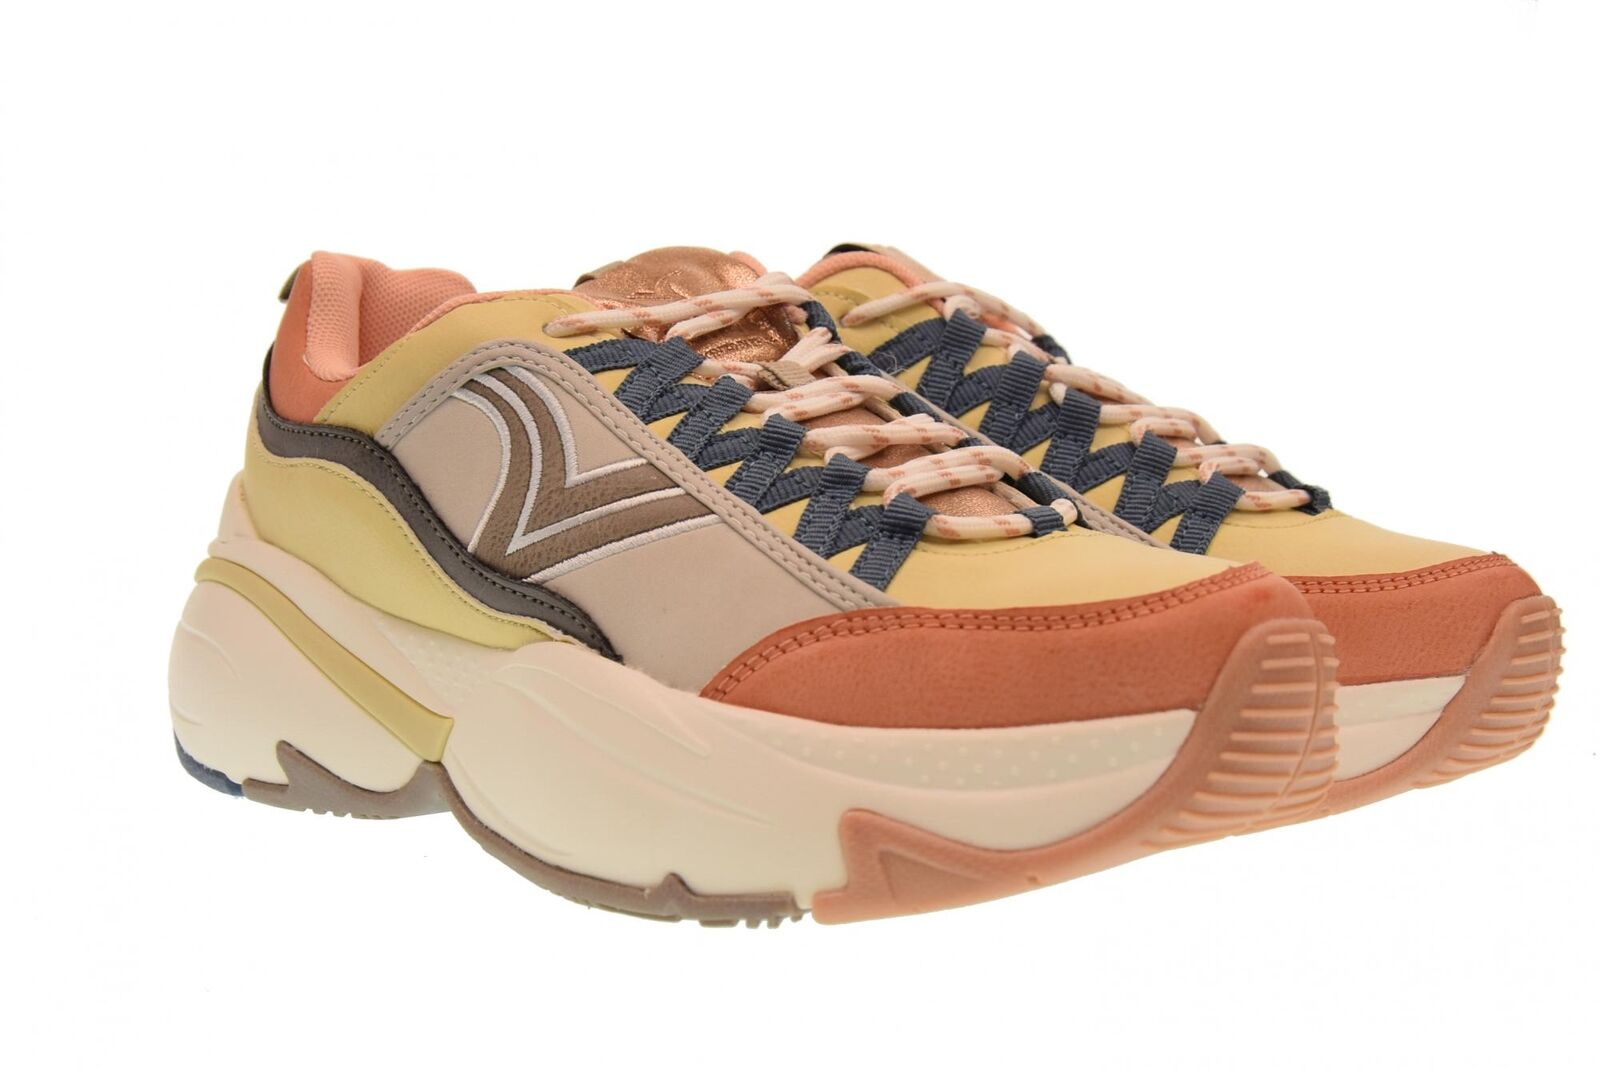 Victoria A18u shoes woman low sneakers 147103 NUDE